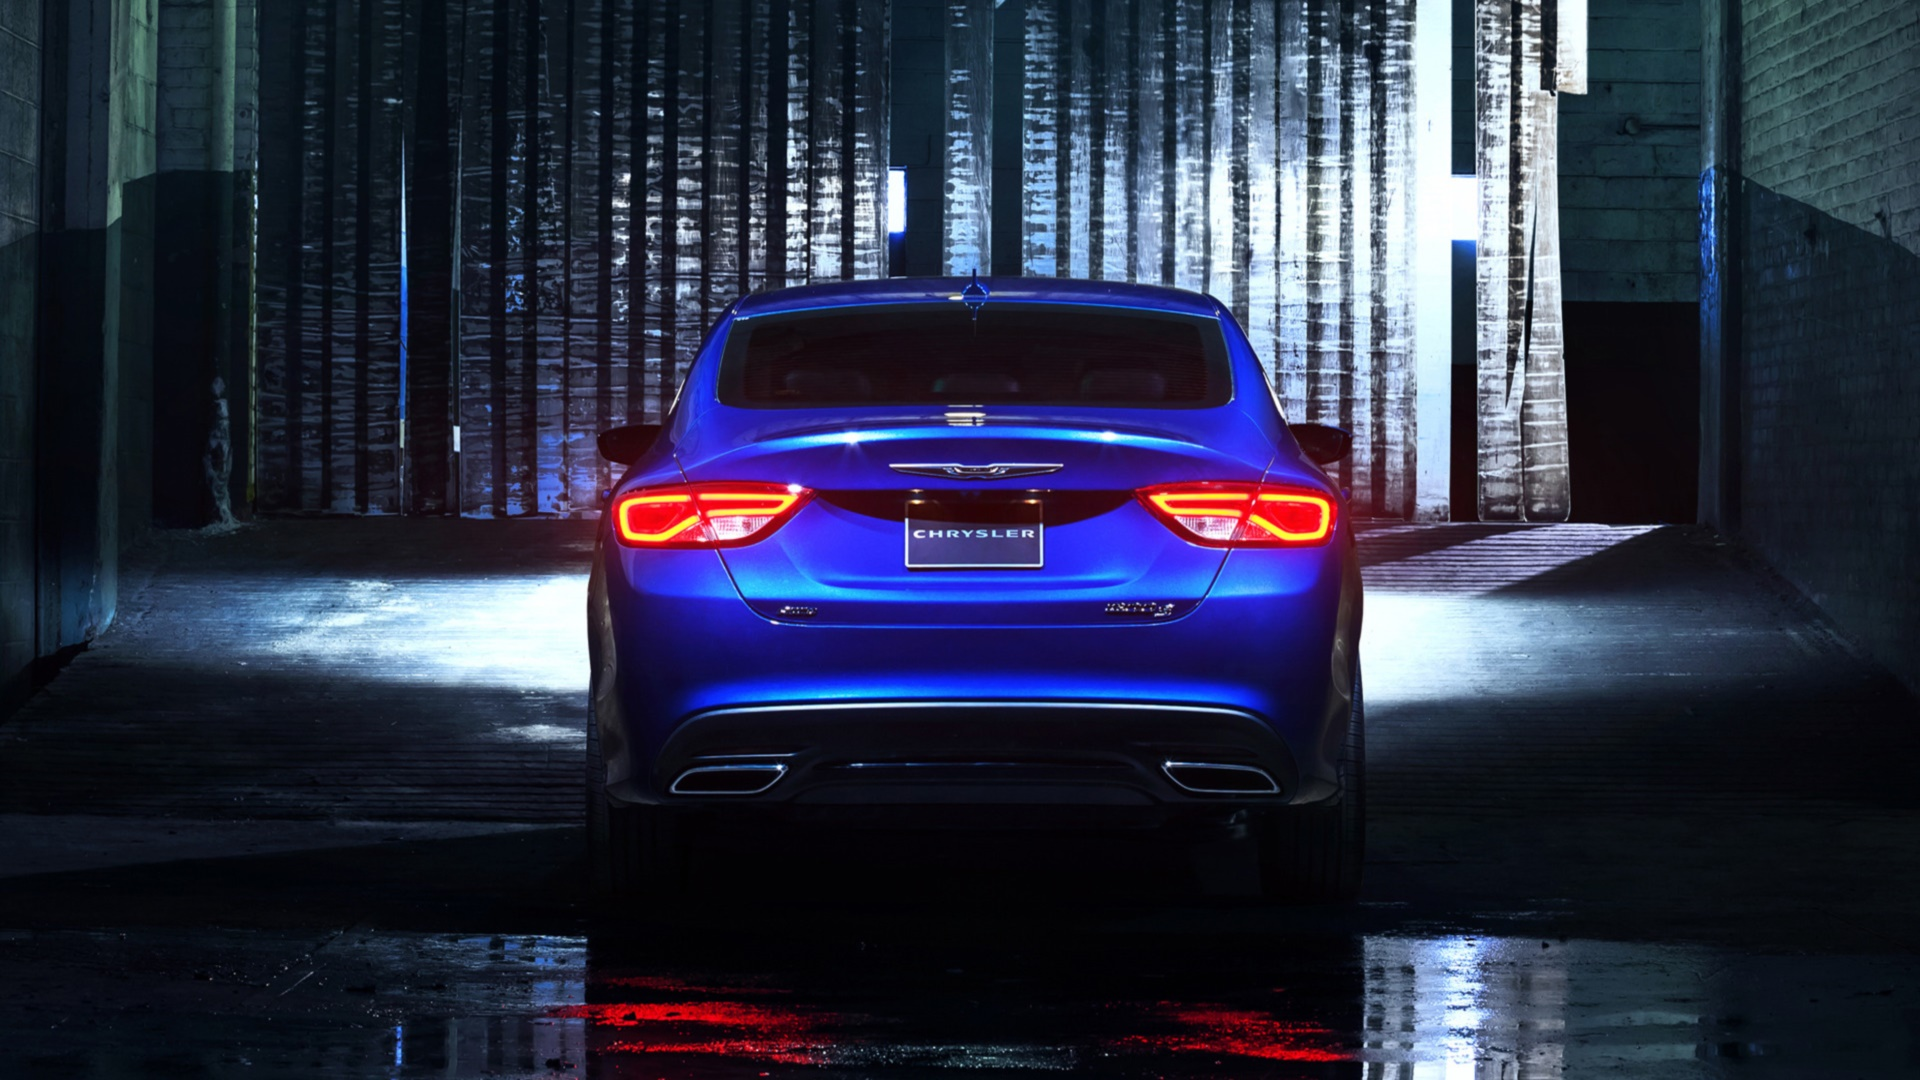 1920x1080 - Chrysler 200 Wallpapers 25